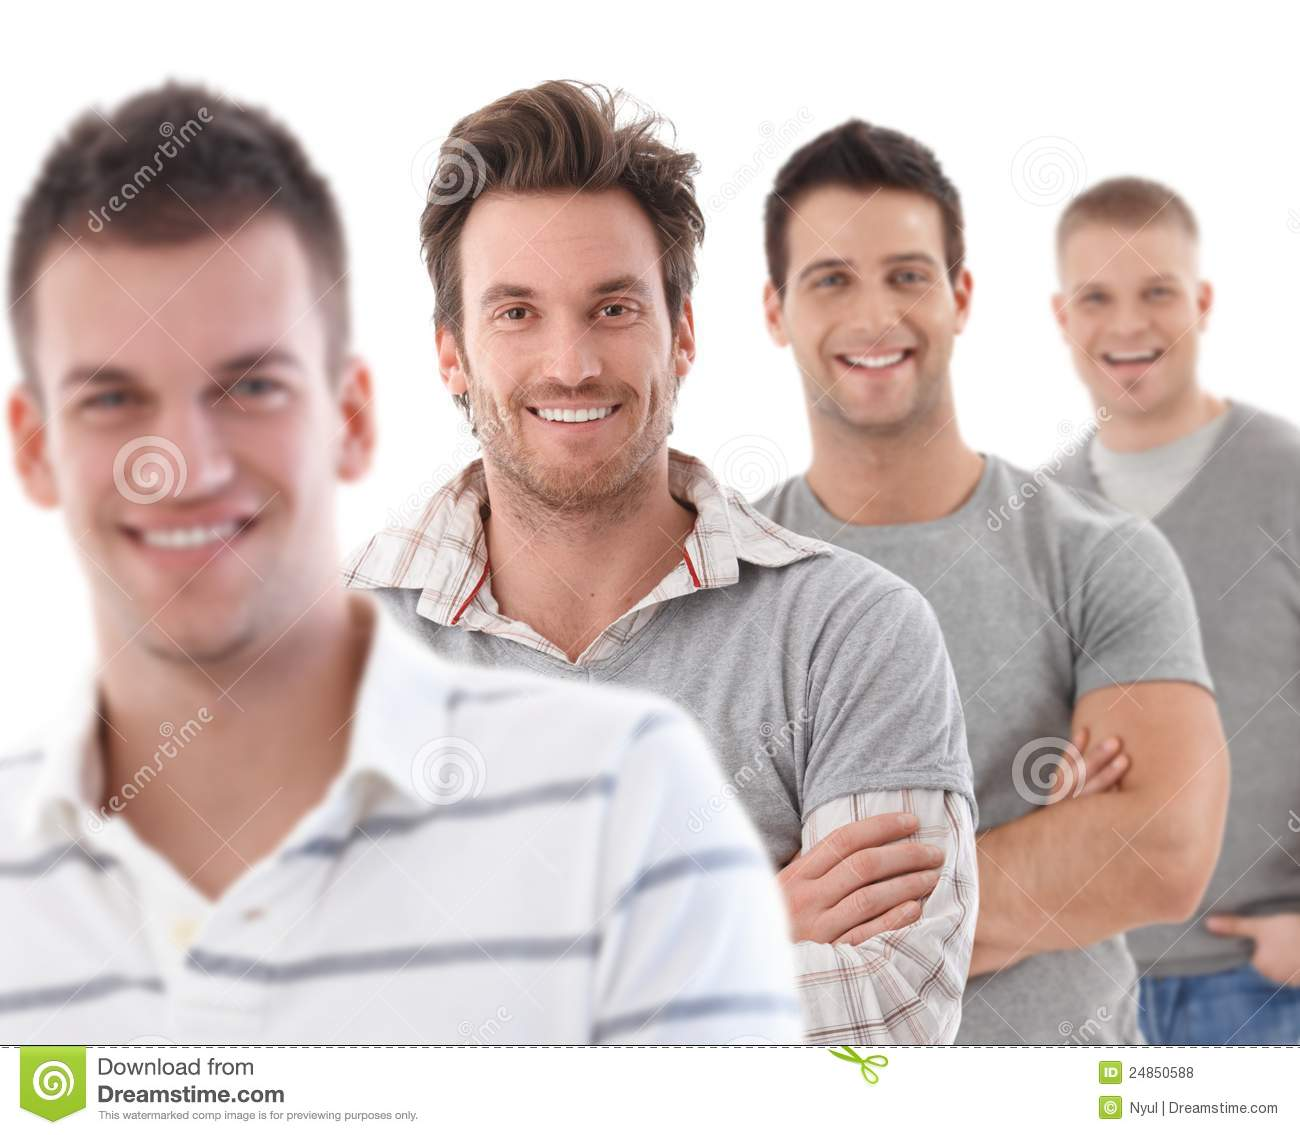 success single men An open letter to single men over 40 may 30, 2015 by sandy  the only people i know who talk about any success from online dating are women the men i know have contacted a lot of women and get.